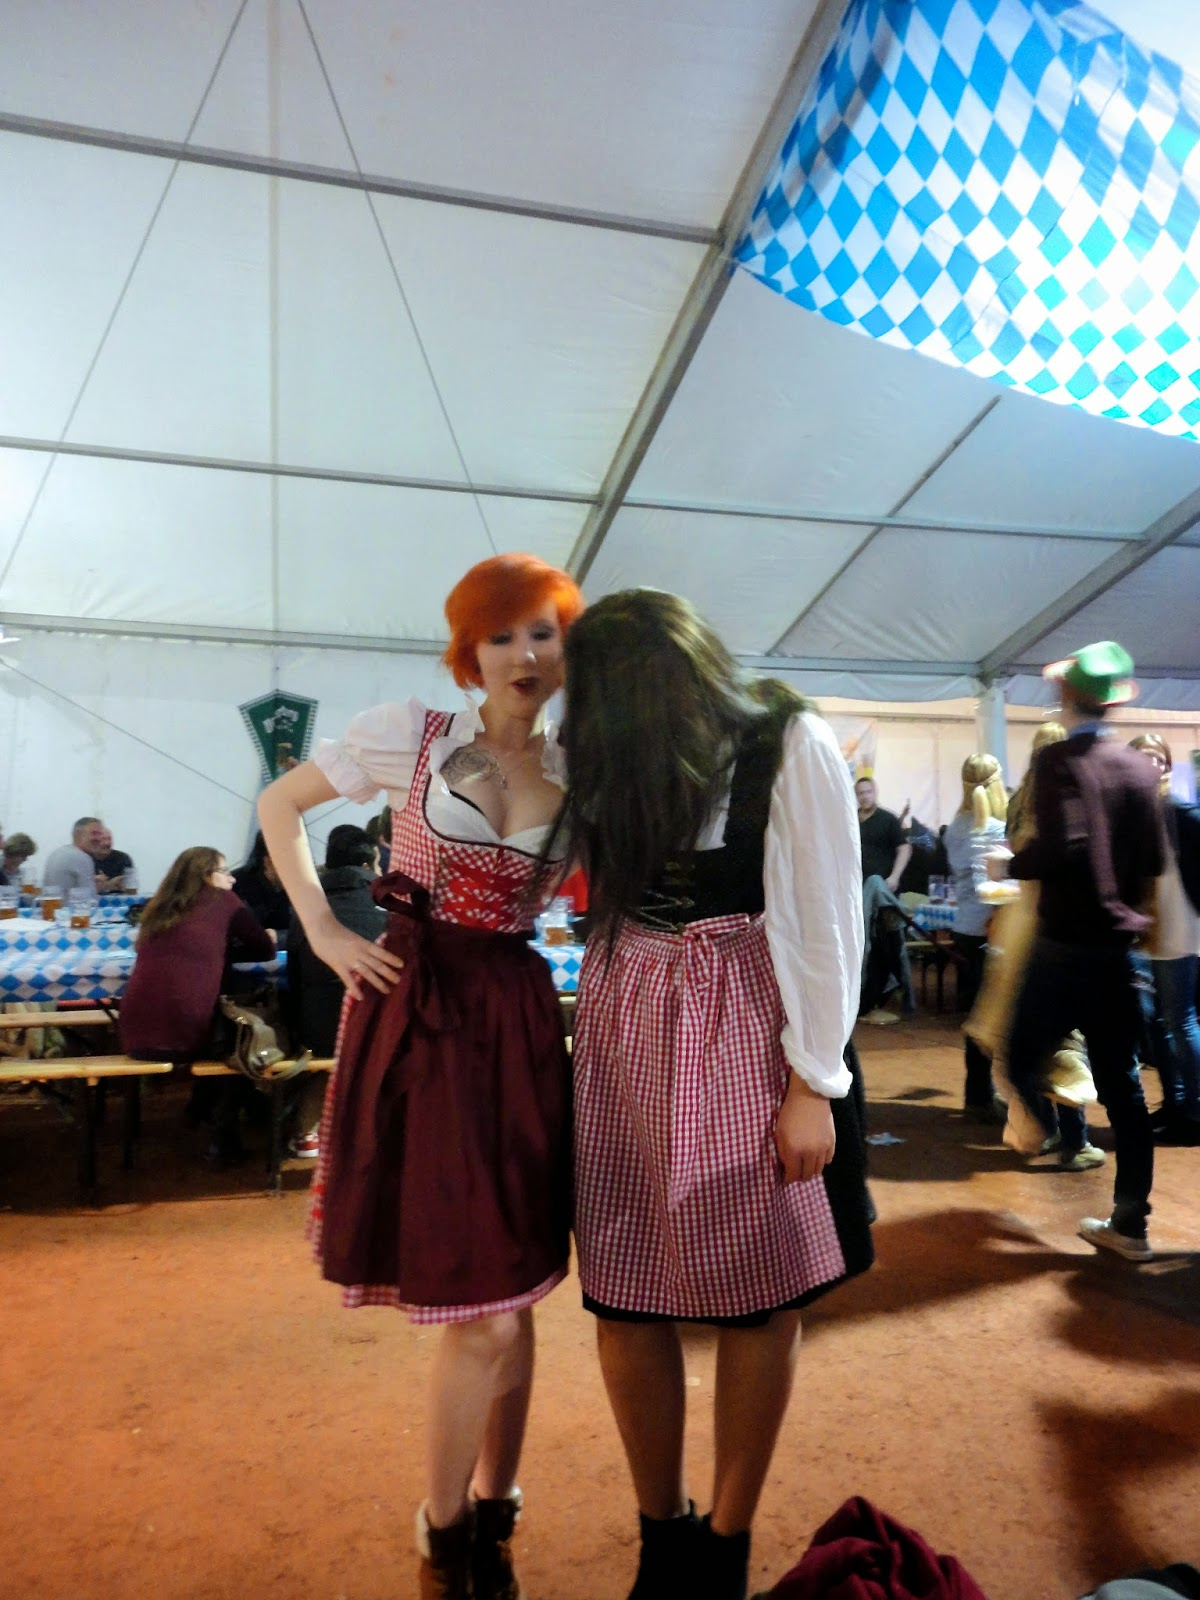 german dirndls traditional dress at edinburgh oktoberfest